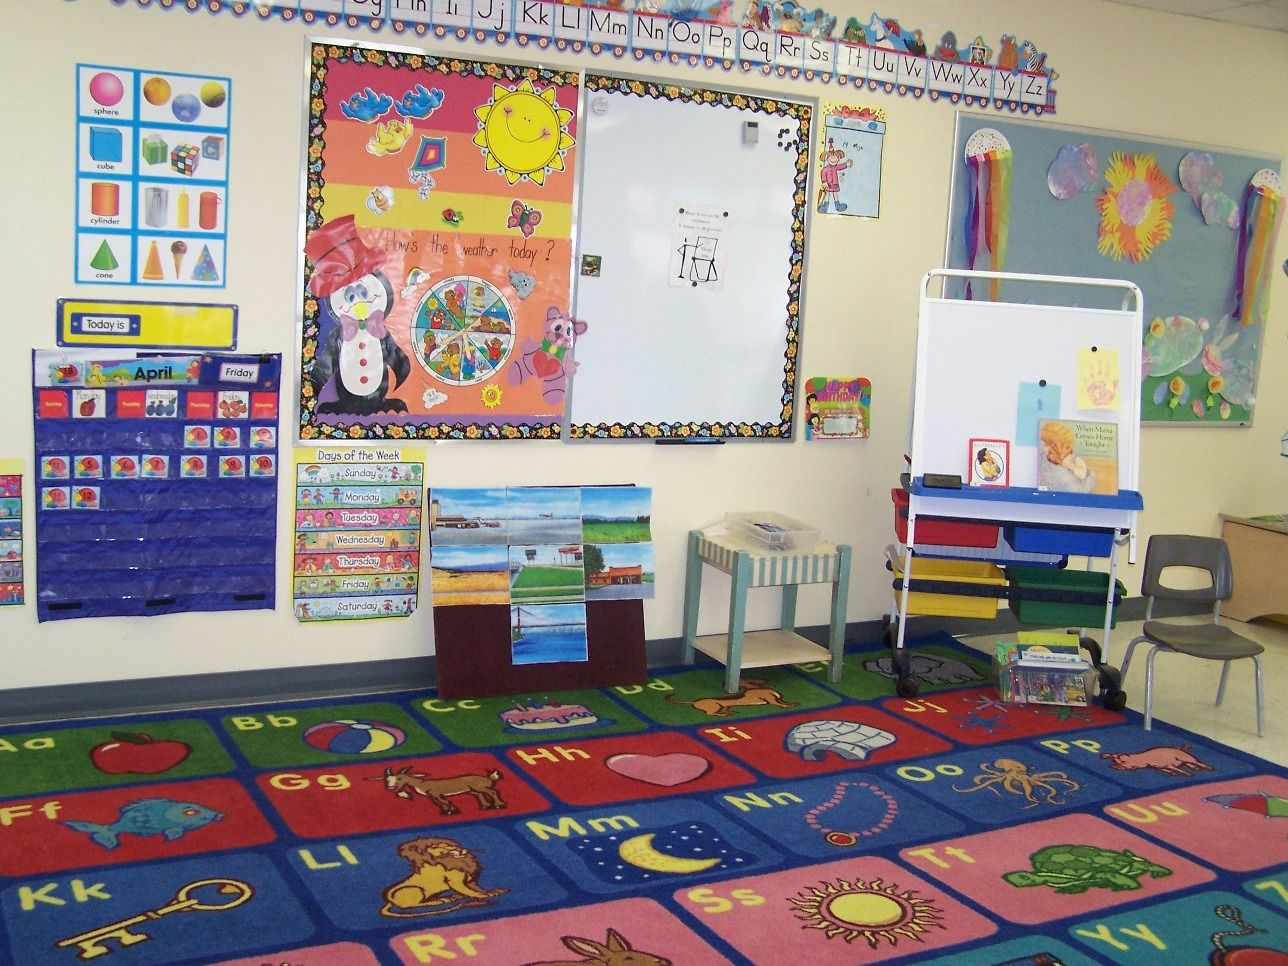 Classroom Decorating Ideas For Preschool : My classroom will be full of learning numbers shapes